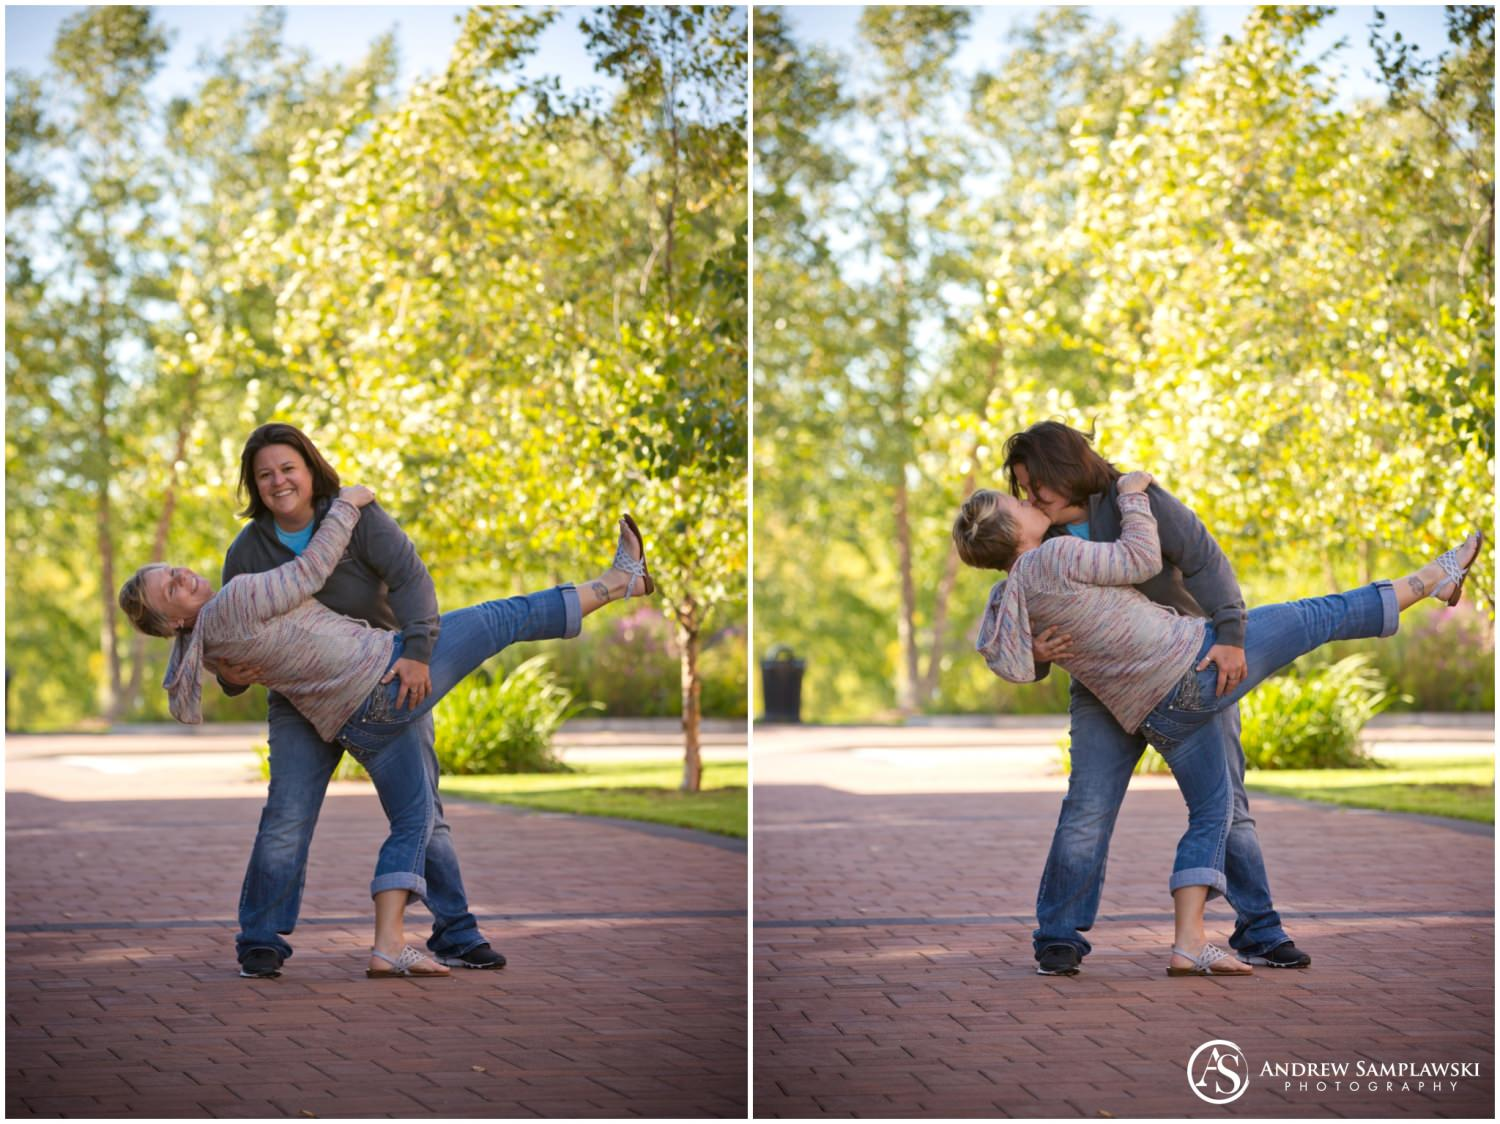 eau claire engagement session andrew samplawski photography